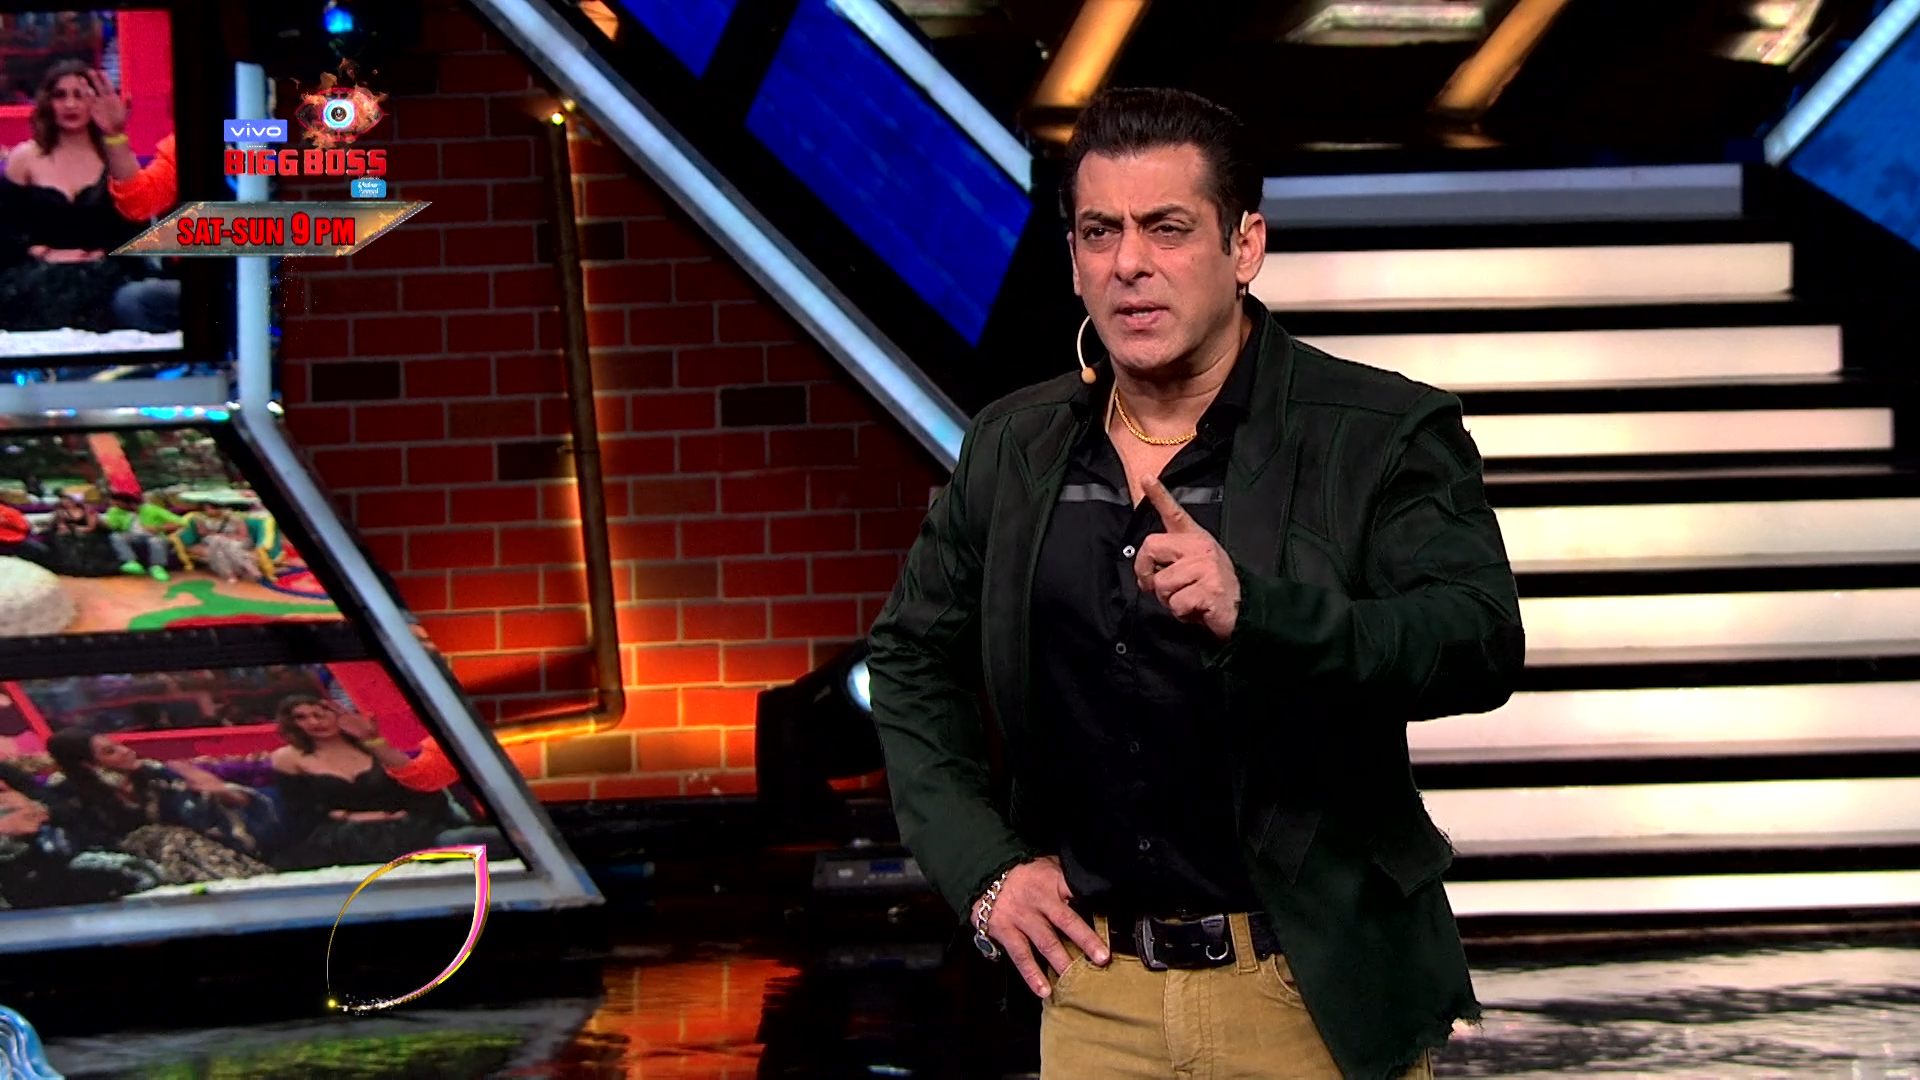 Bigg Boss 13 WKV Sneak Peek 02|25 Jan 2020: Salman Throws Sidharth & Asim Out Of The House?